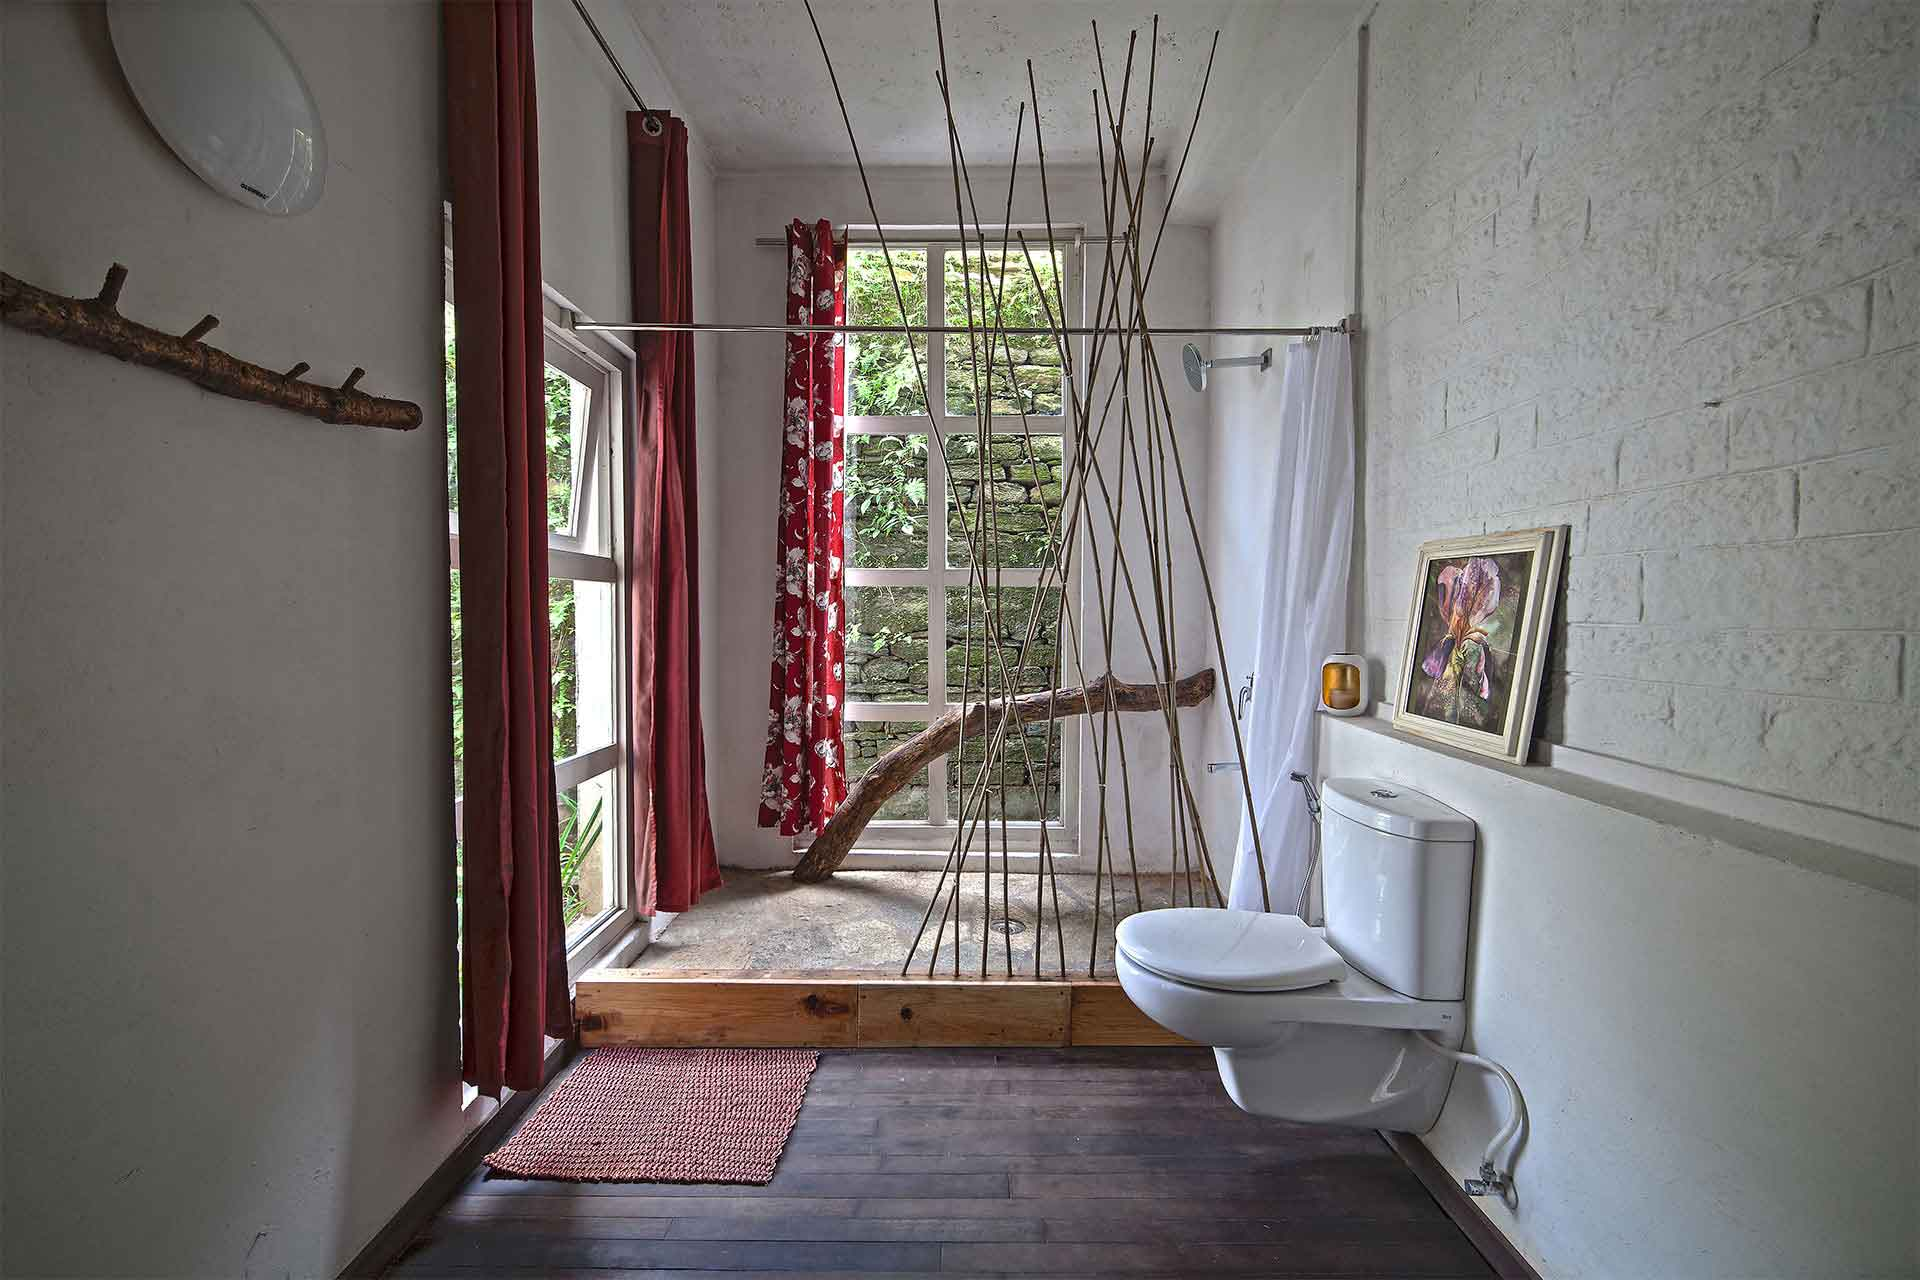 ..a fallen log holding the shower curtain partition - using this bathroom is a joyful experience